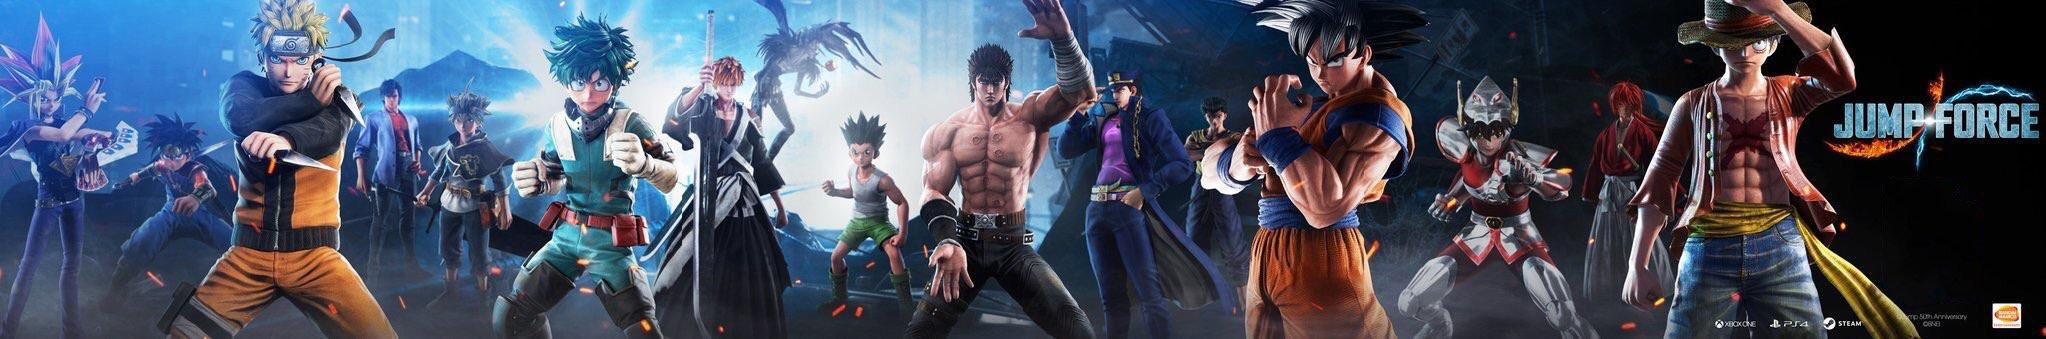 Jump Force - Personagens